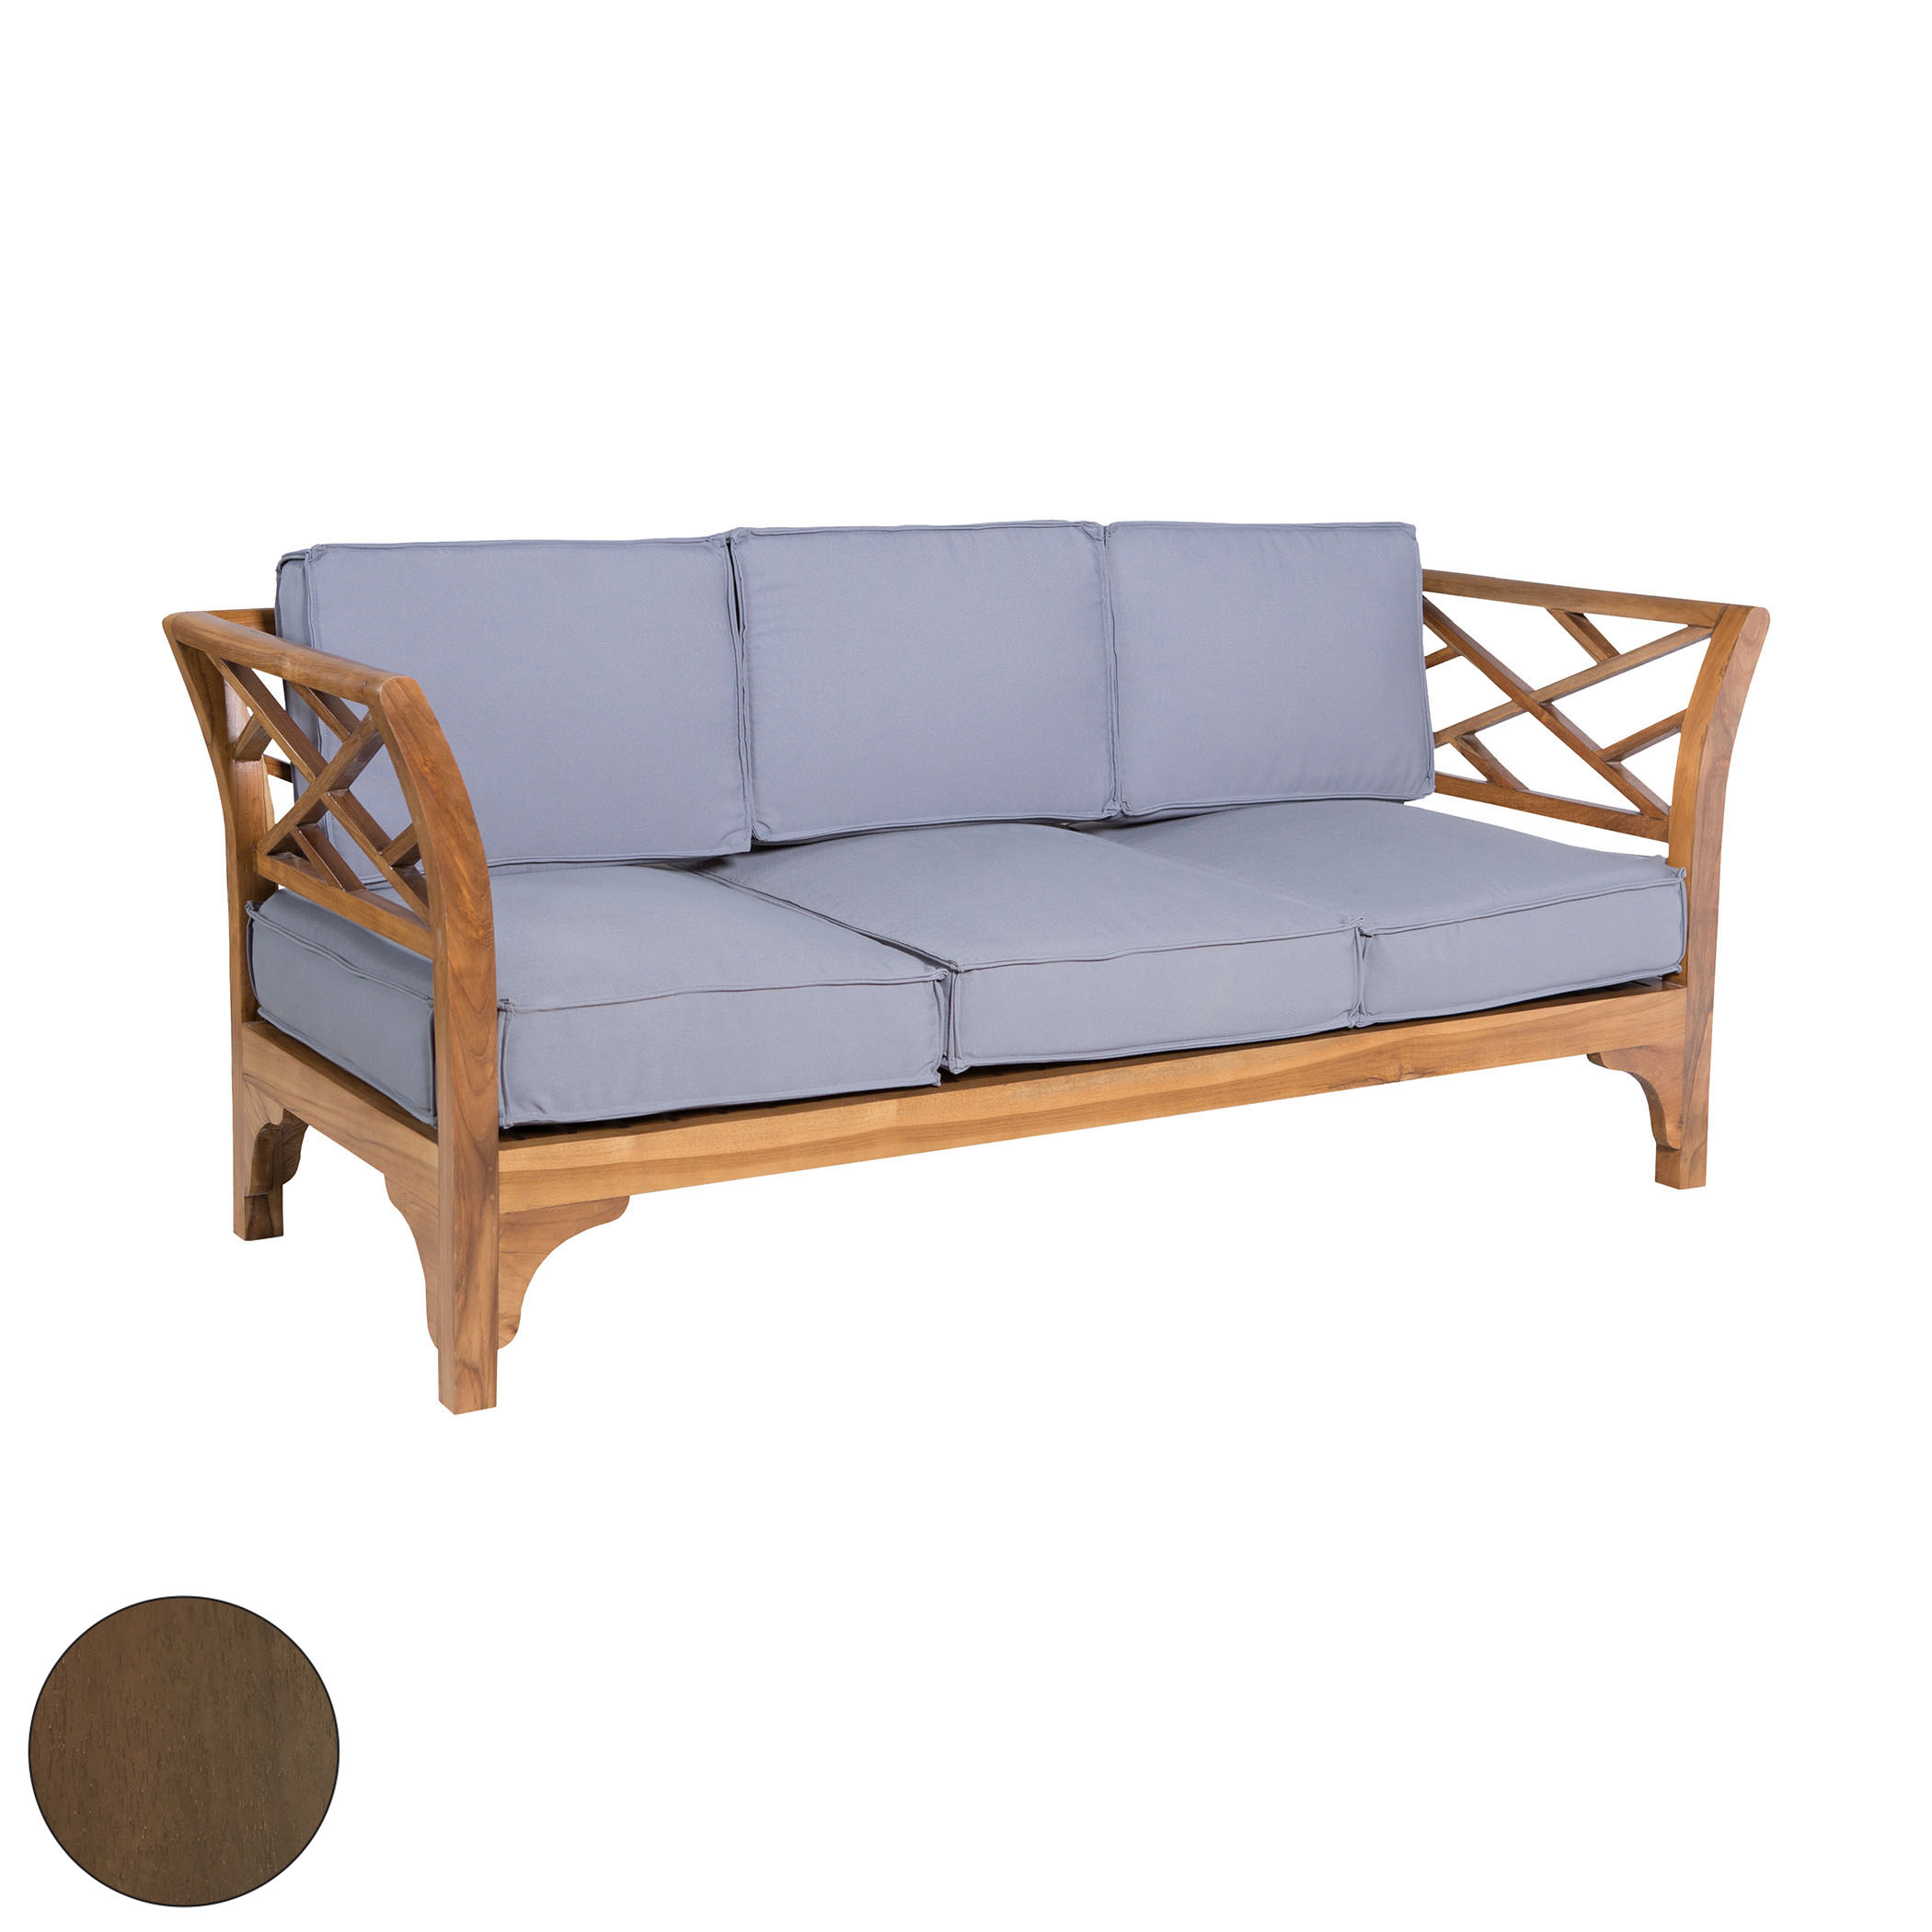 Patio Branch Sofa 6517505BU | ELK Home